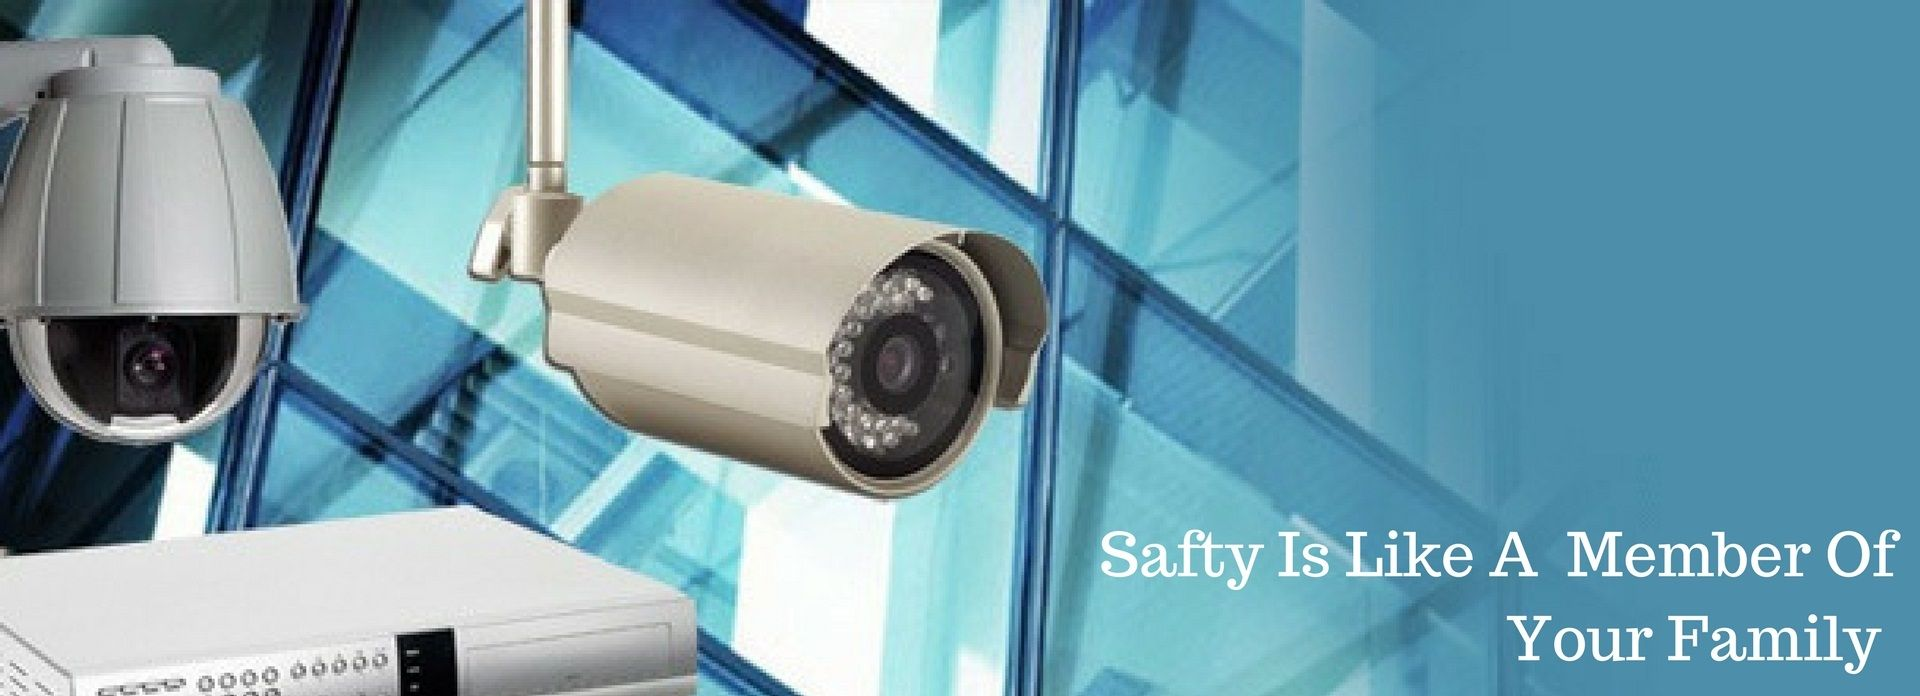 Why The Demand For Home Security Services In Norwich Is Increasing Security Camera Installation Home Security Systems Home Security